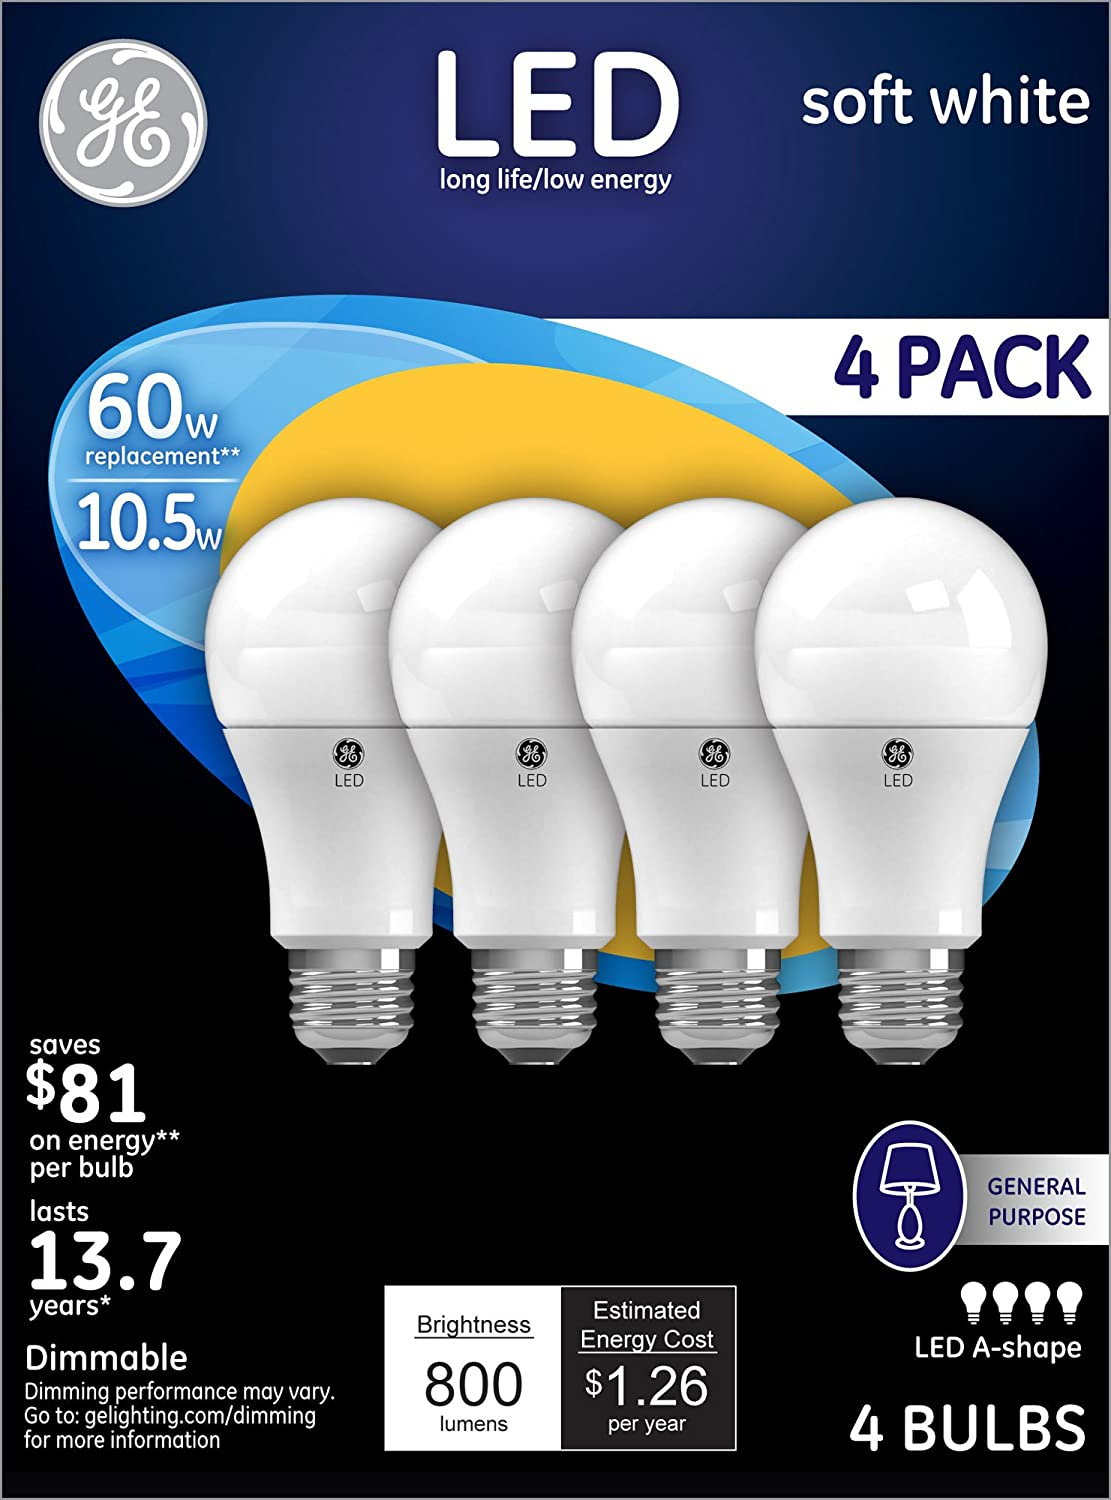 GE Lighting 88733 Energy-Smart LED 10.5-watt 800-Lumen A19 Bulb with Medium Base Soft White 4-Pack - - Amazon.com  sc 1 st  Amazon.com & GE Lighting 88733 Energy-Smart LED 10.5-watt 800-Lumen A19 Bulb ... azcodes.com